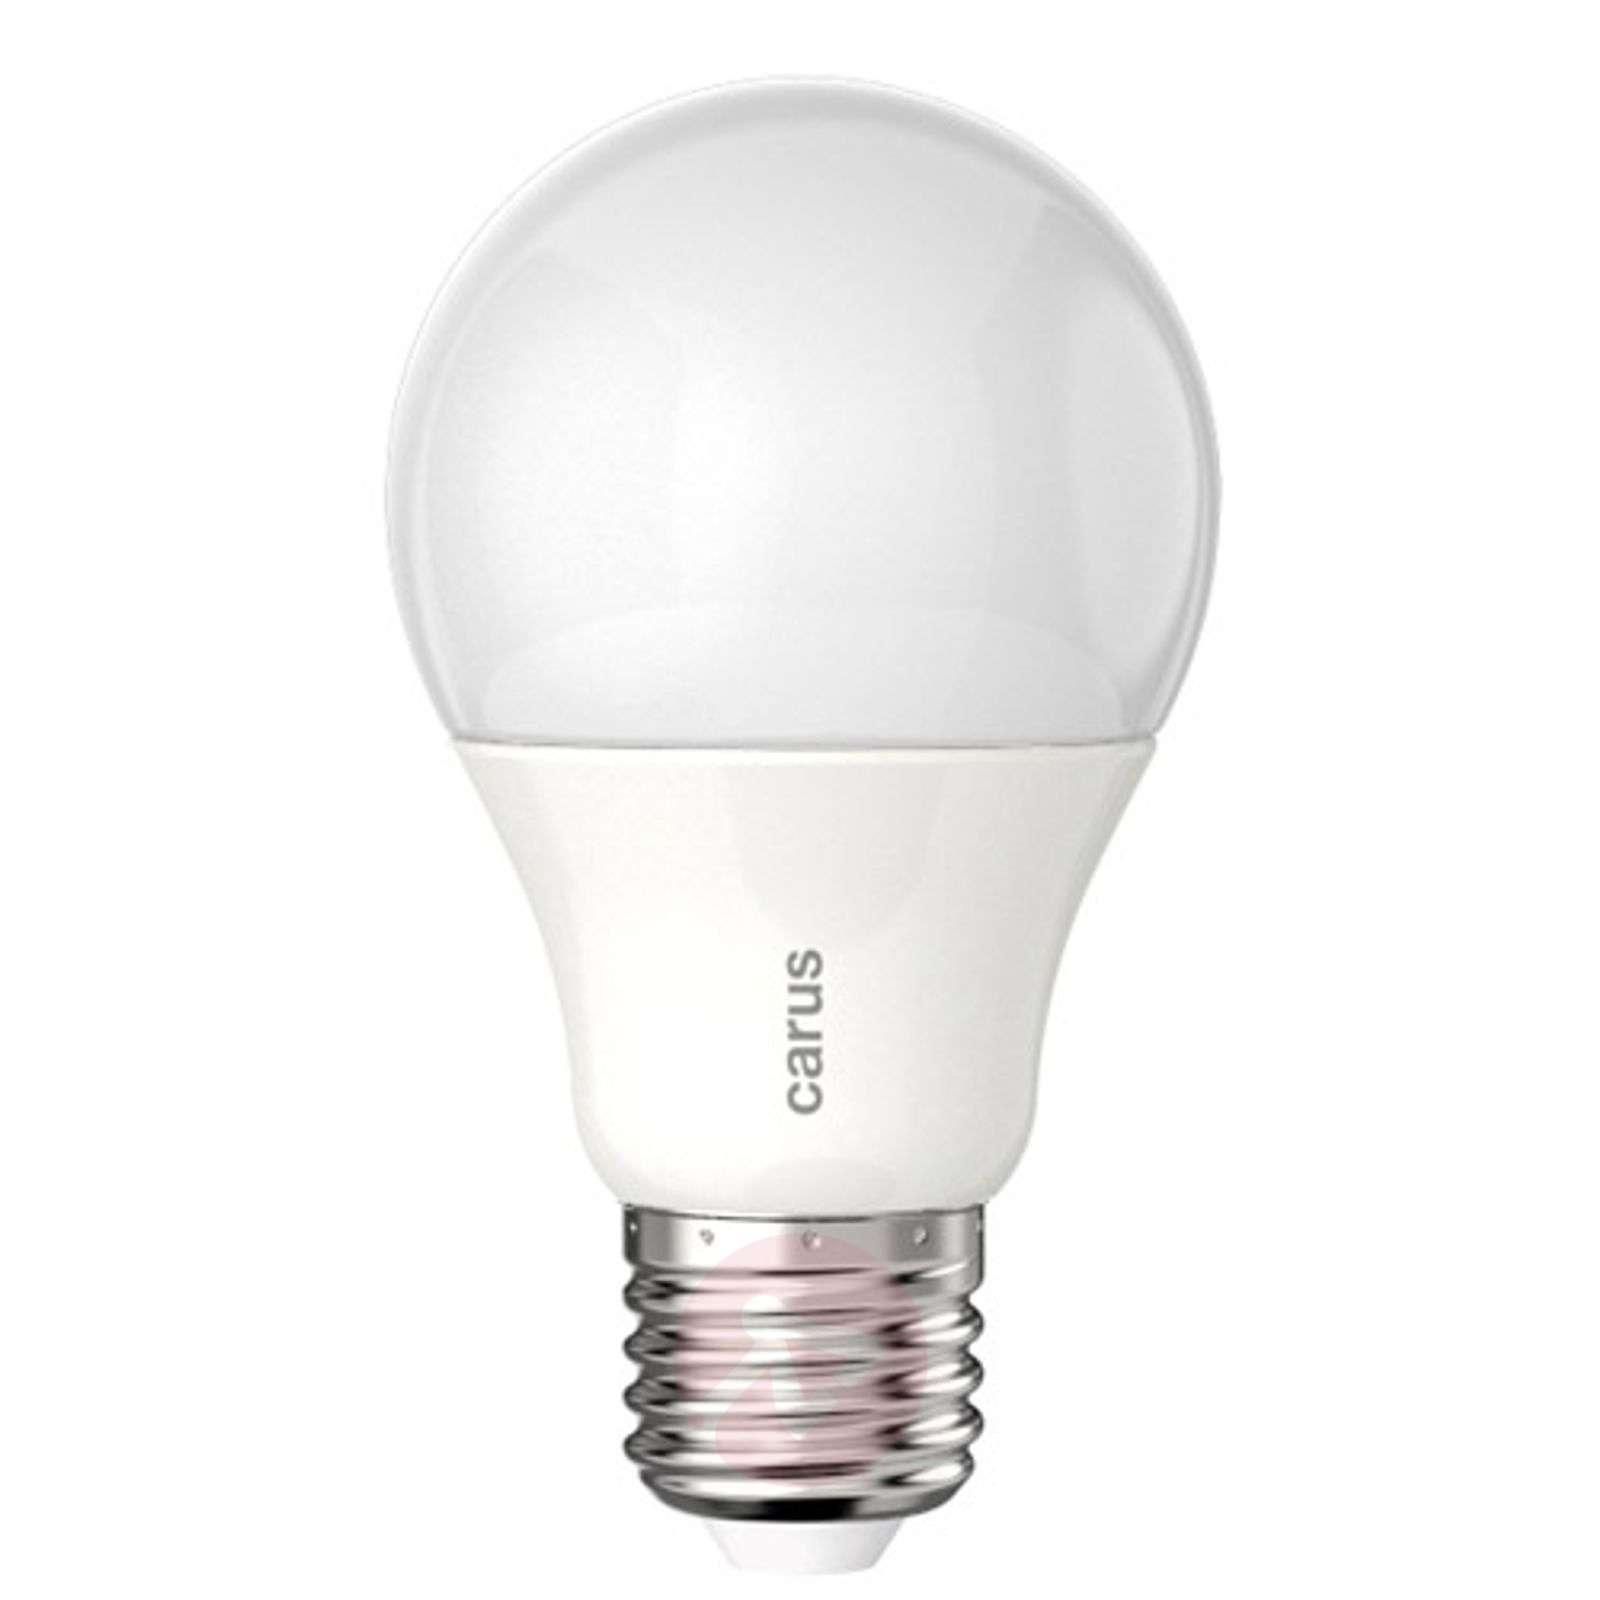 Bombilla LED E27 8,6W 927 mate, atenuable-2025004-01